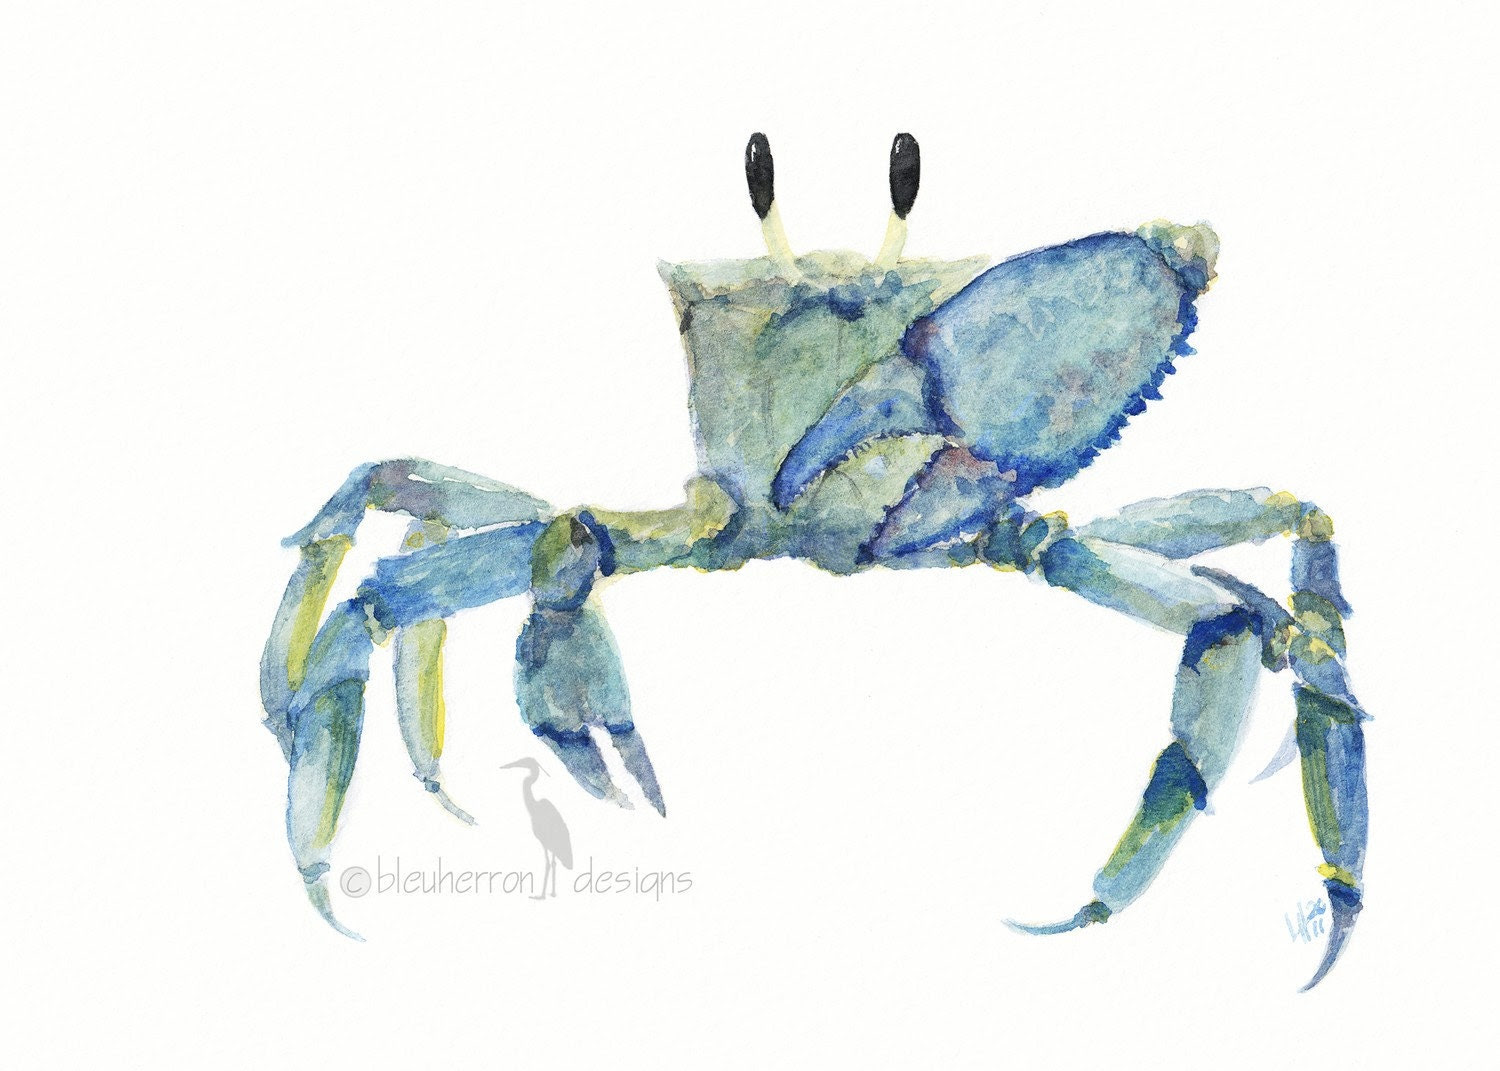 Ocean watercolor- Blue Crab - 5x7 watercolor print - bleuherron